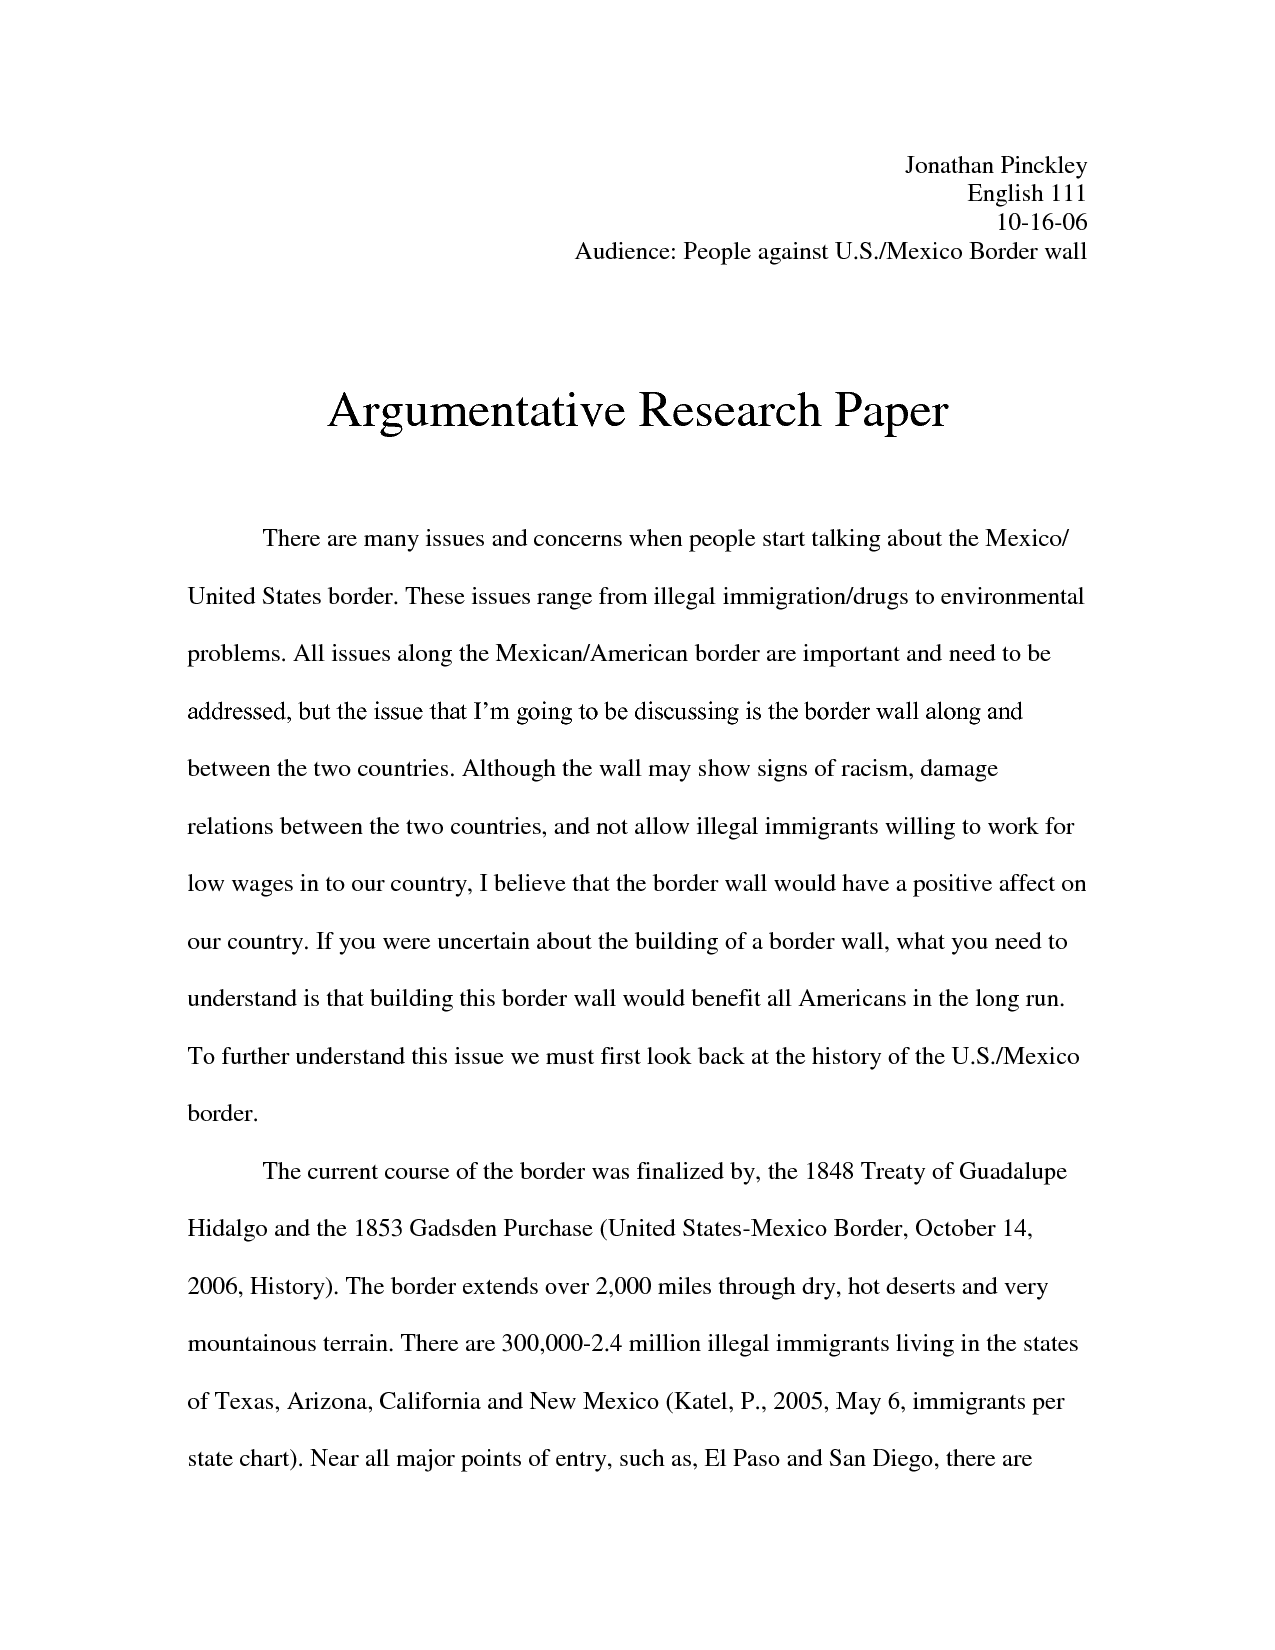 014 Uncategorized Debate20y Argumentative Thesis High School Topics Sentence Starters Outline Worksheet Structure20 For Research Rare A Paper Medical Easy Papers Interesting Full